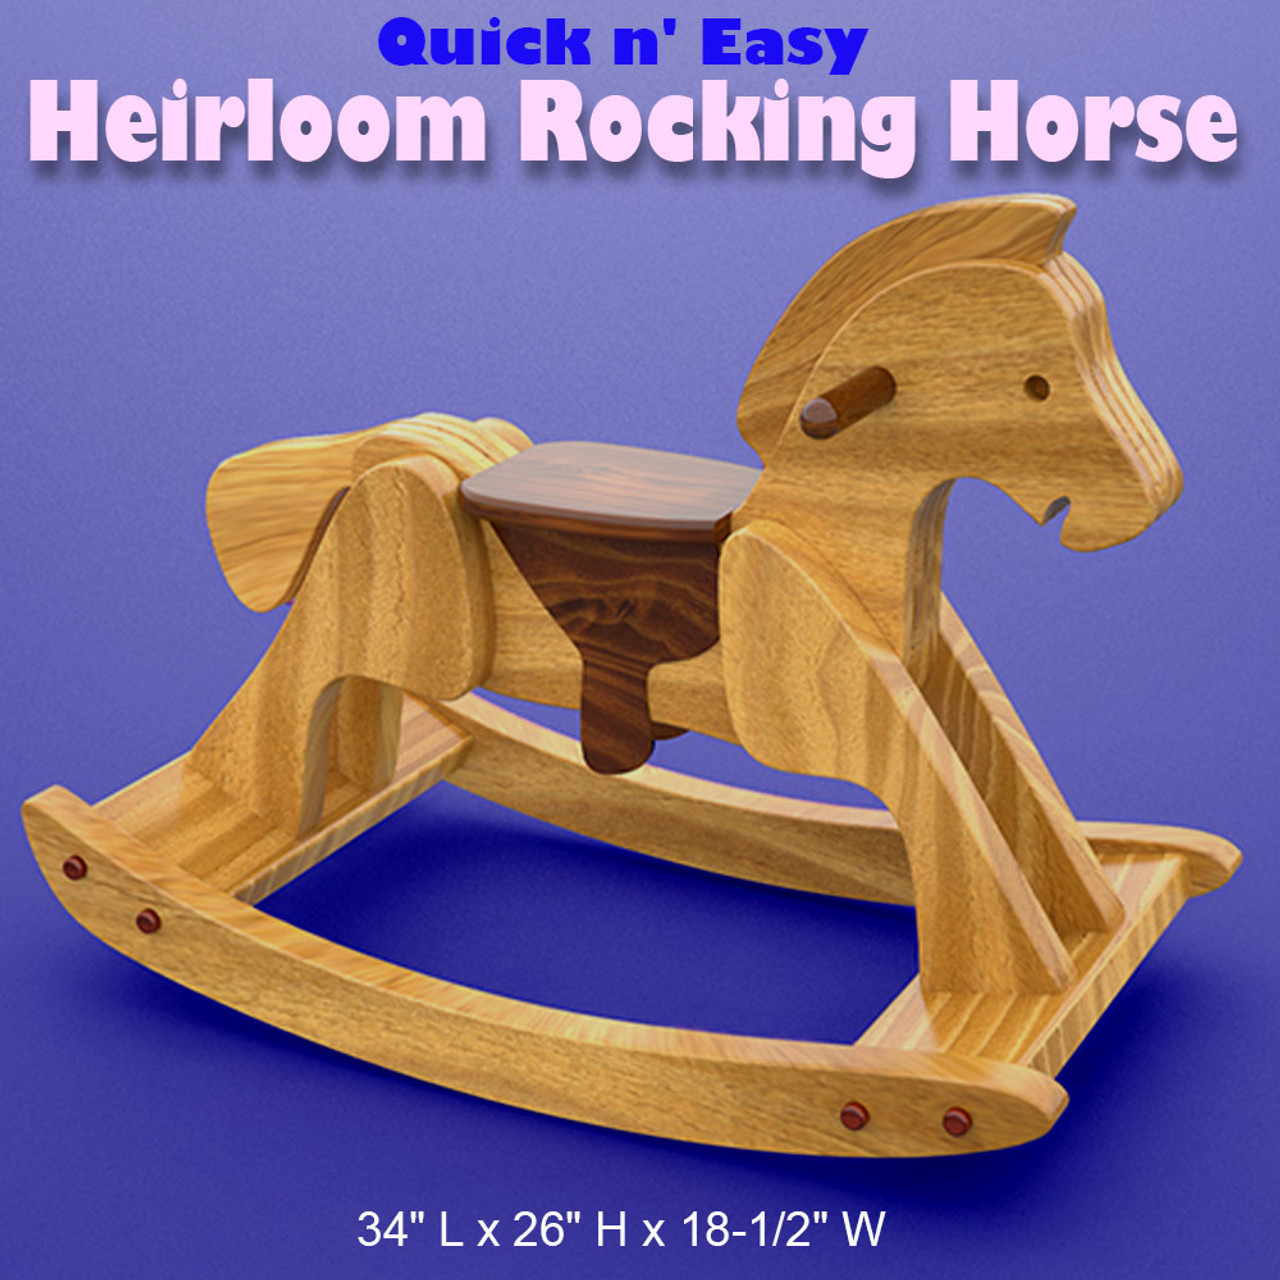 quick & easy heirloom rocking horse wood toy plans (pdf download)